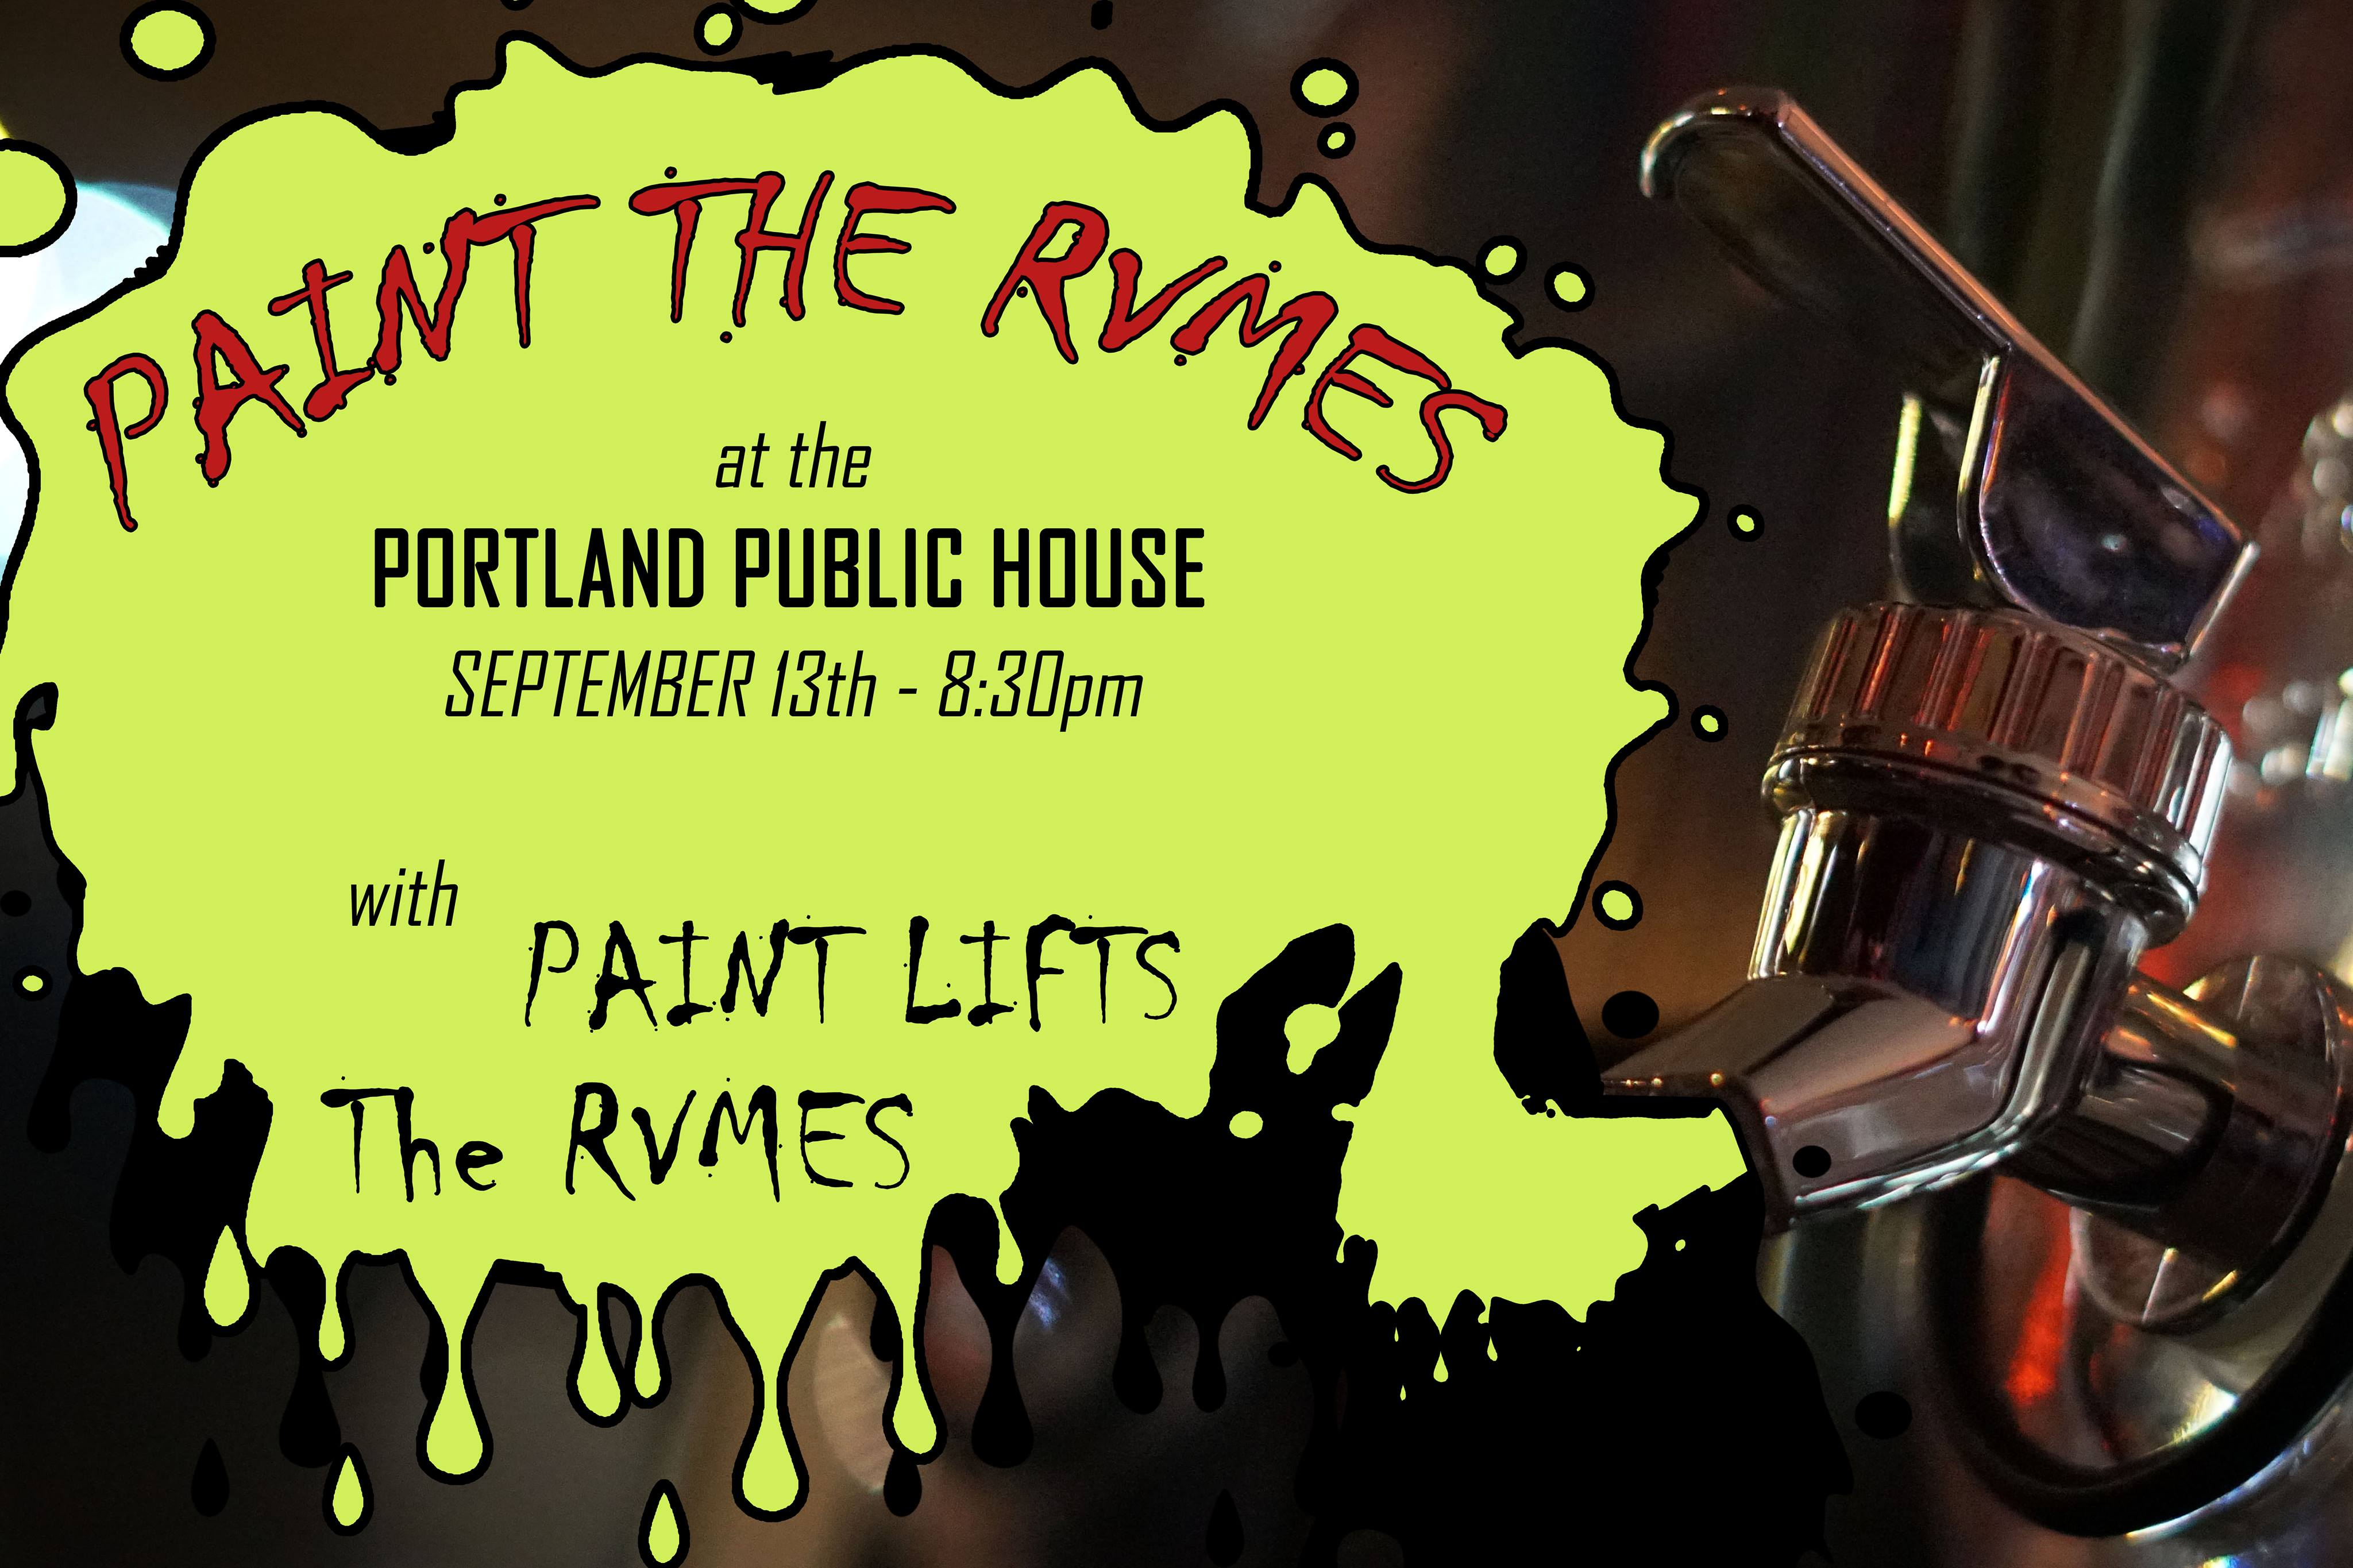 Paint The Rvmes